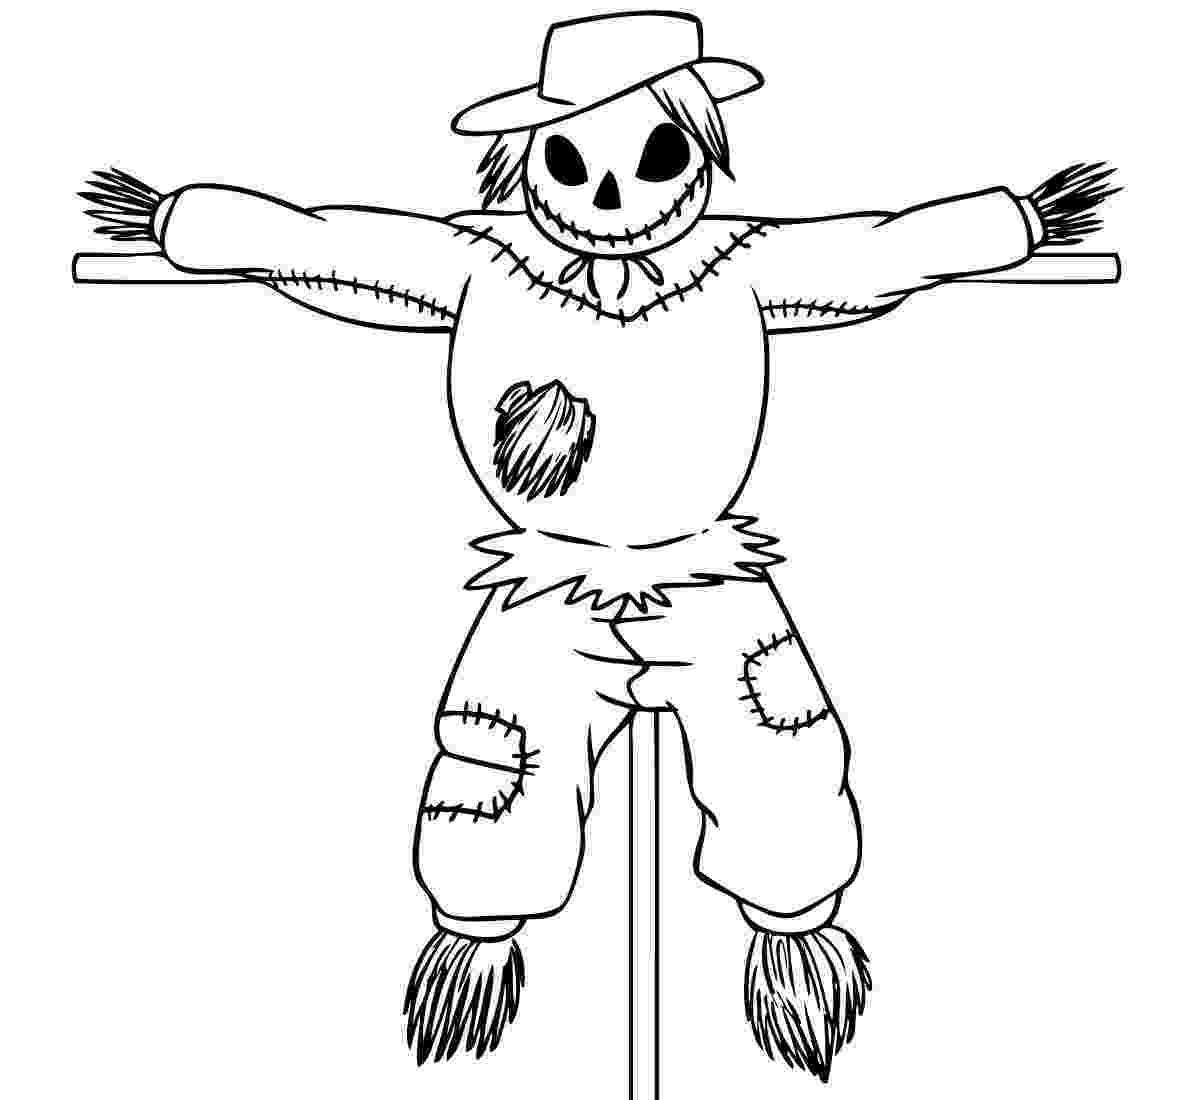 scarecrow coloring page free printable scarecrow coloring pages for kids coloring scarecrow page